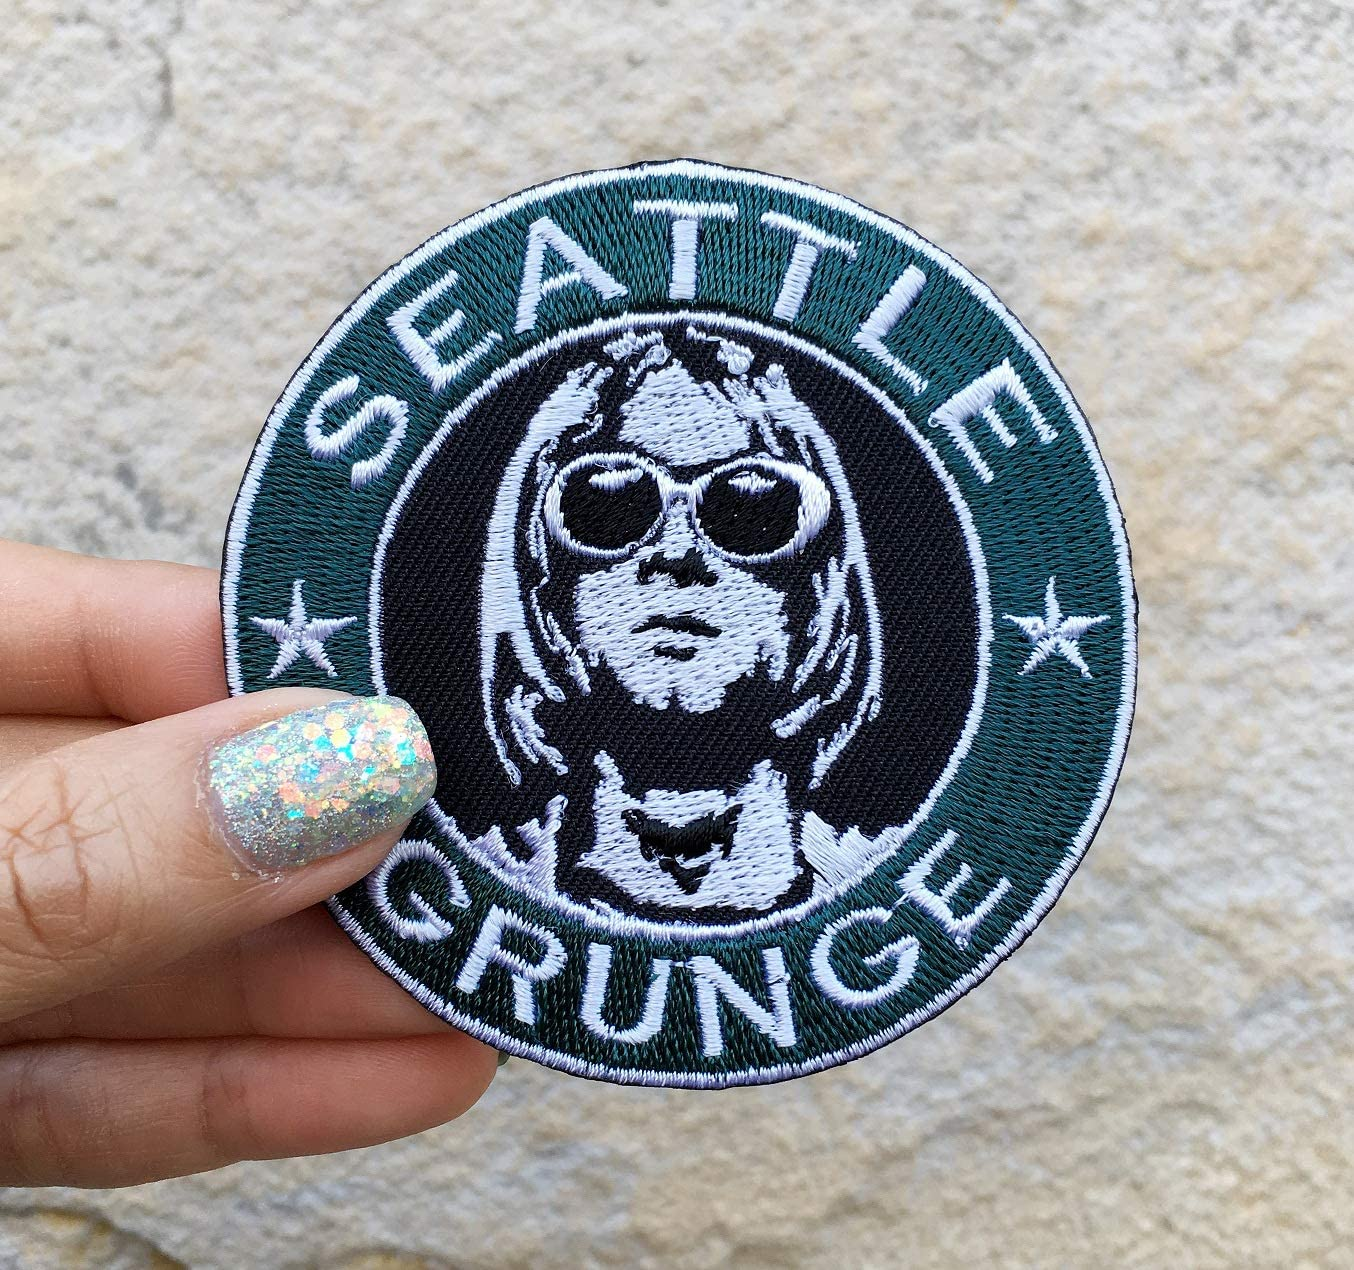 Embroidery Cloth Patches Badge Iron Sew On Nirvana Patch